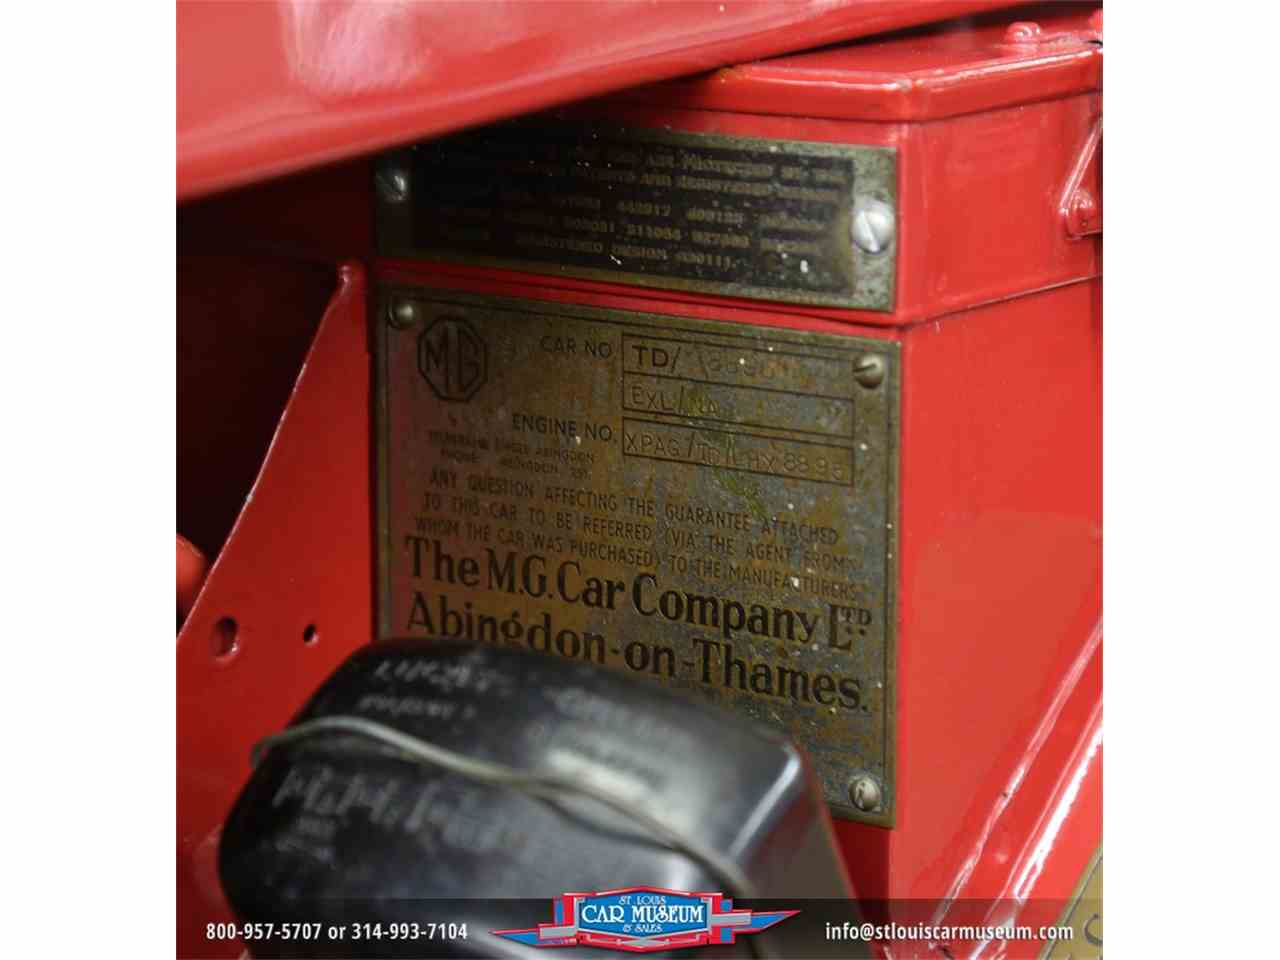 Large Picture of '51 MG TD located in St. Louis Missouri - $28,900.00 - JTH6